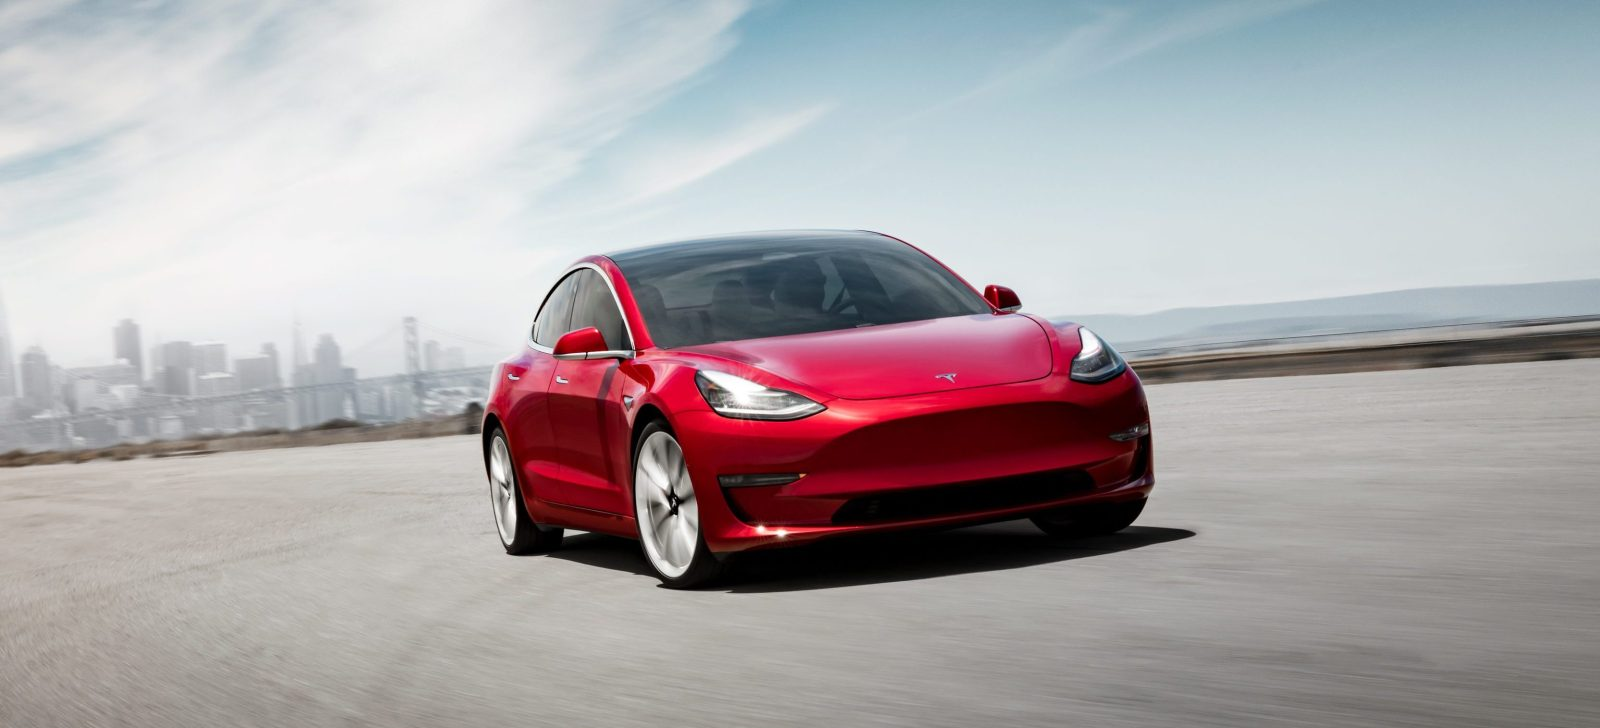 medium resolution of tesla opens model 3 orders to the public in europe and china